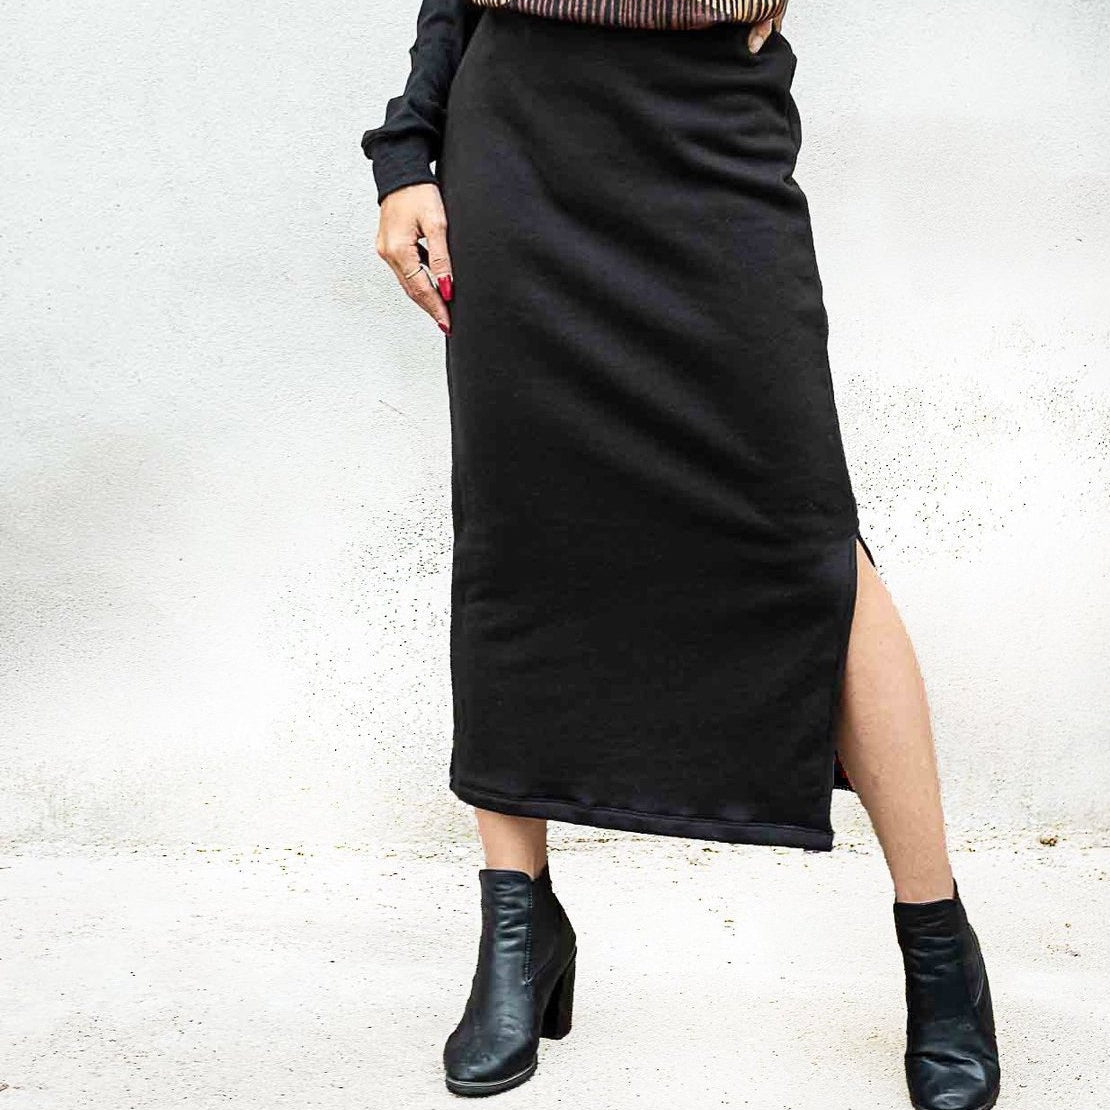 Sweatshirt skirt by Tonle-multiple colors